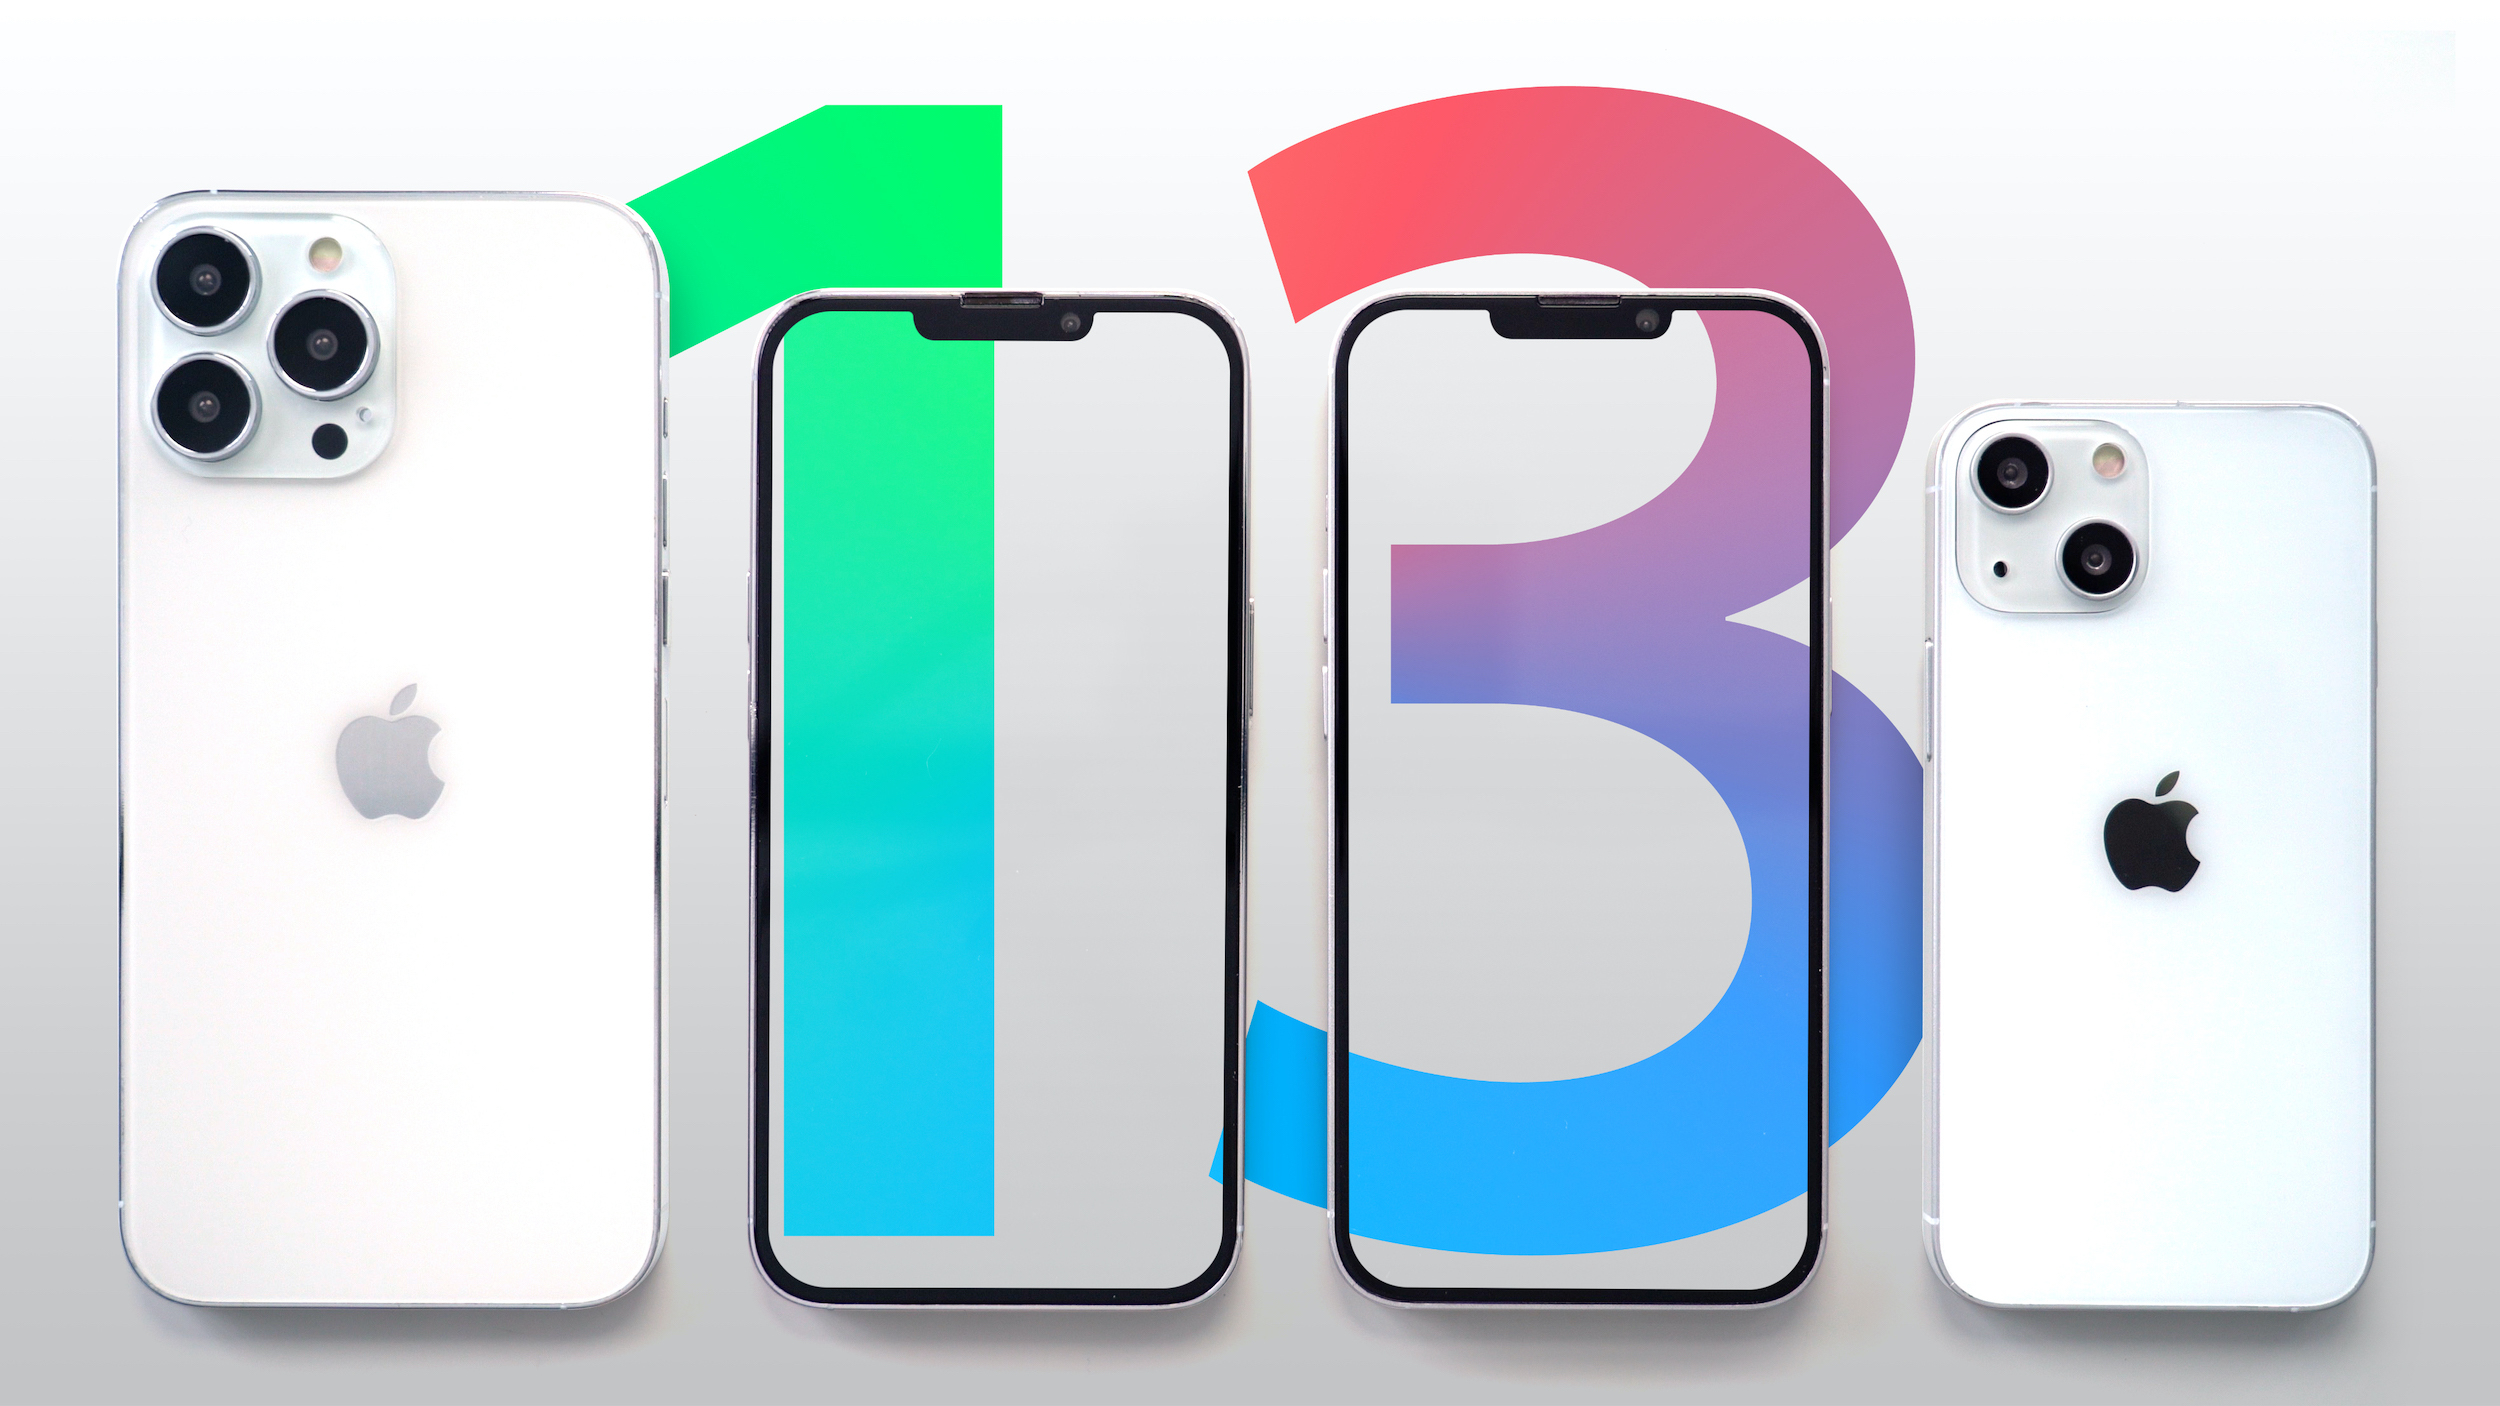 TrendForce Shares Last-Minute iPhone 13 Expectations Ahead of Today's Apple Event